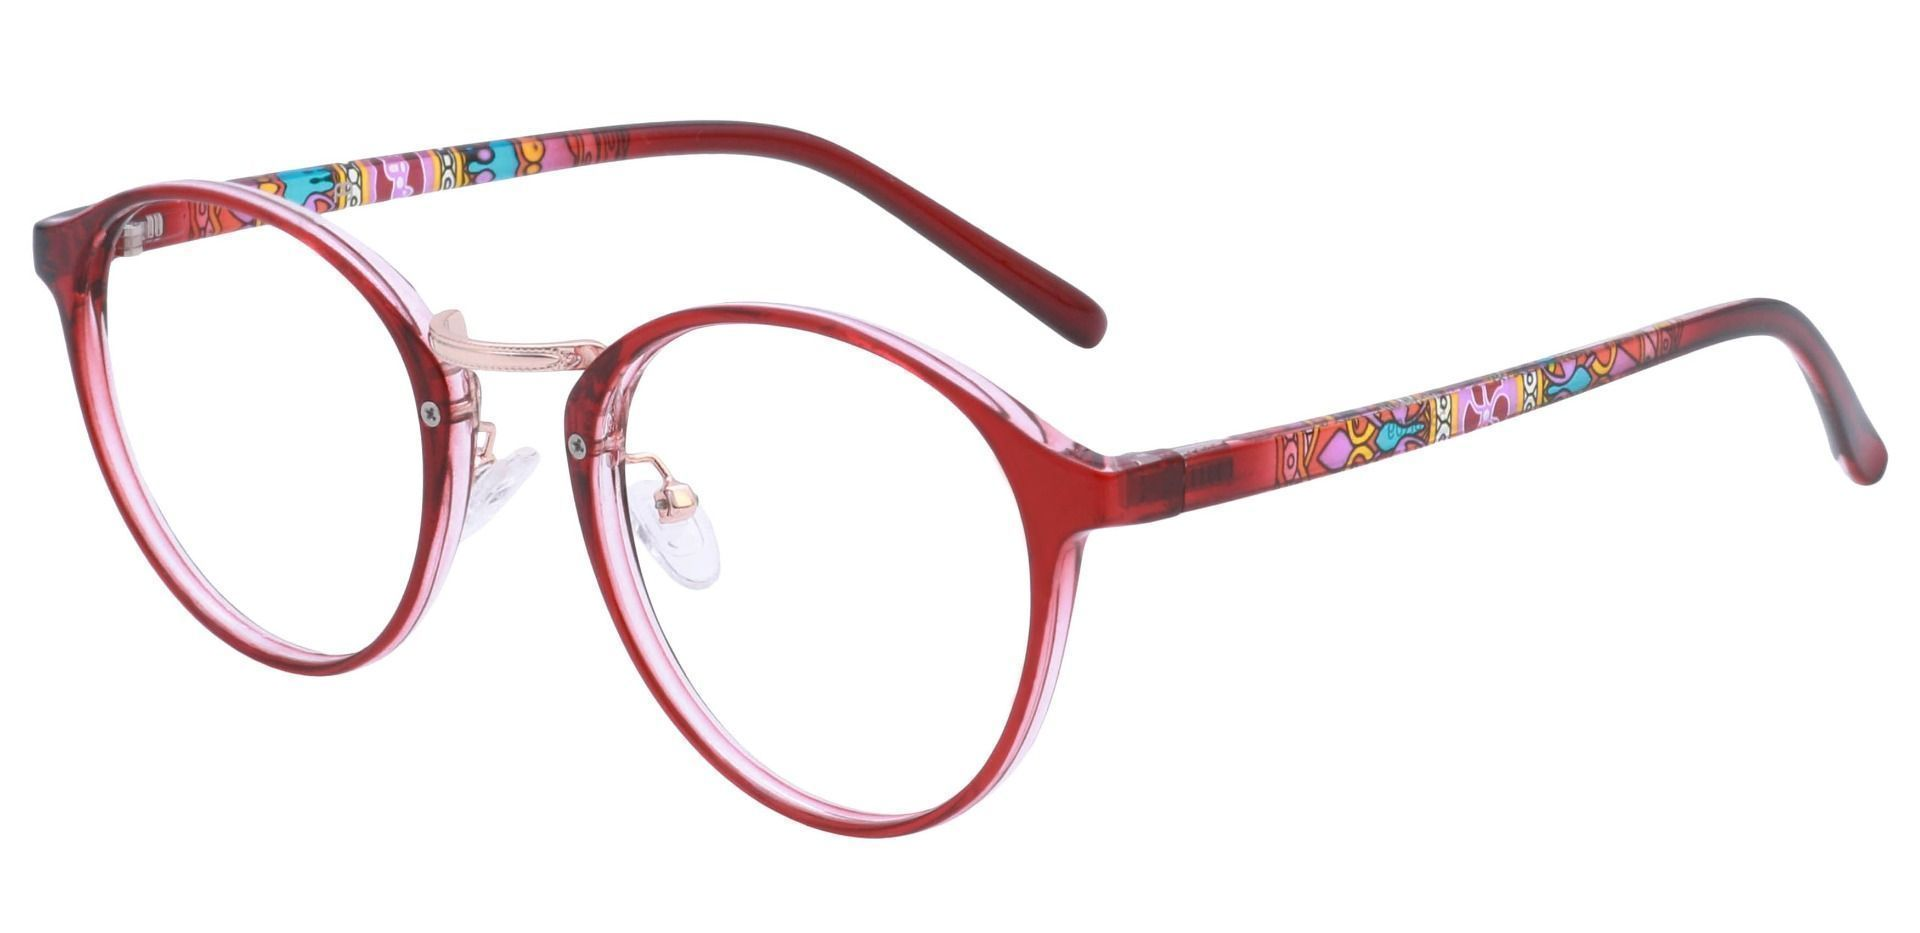 Bloom Oval Prescription Glasses - Red